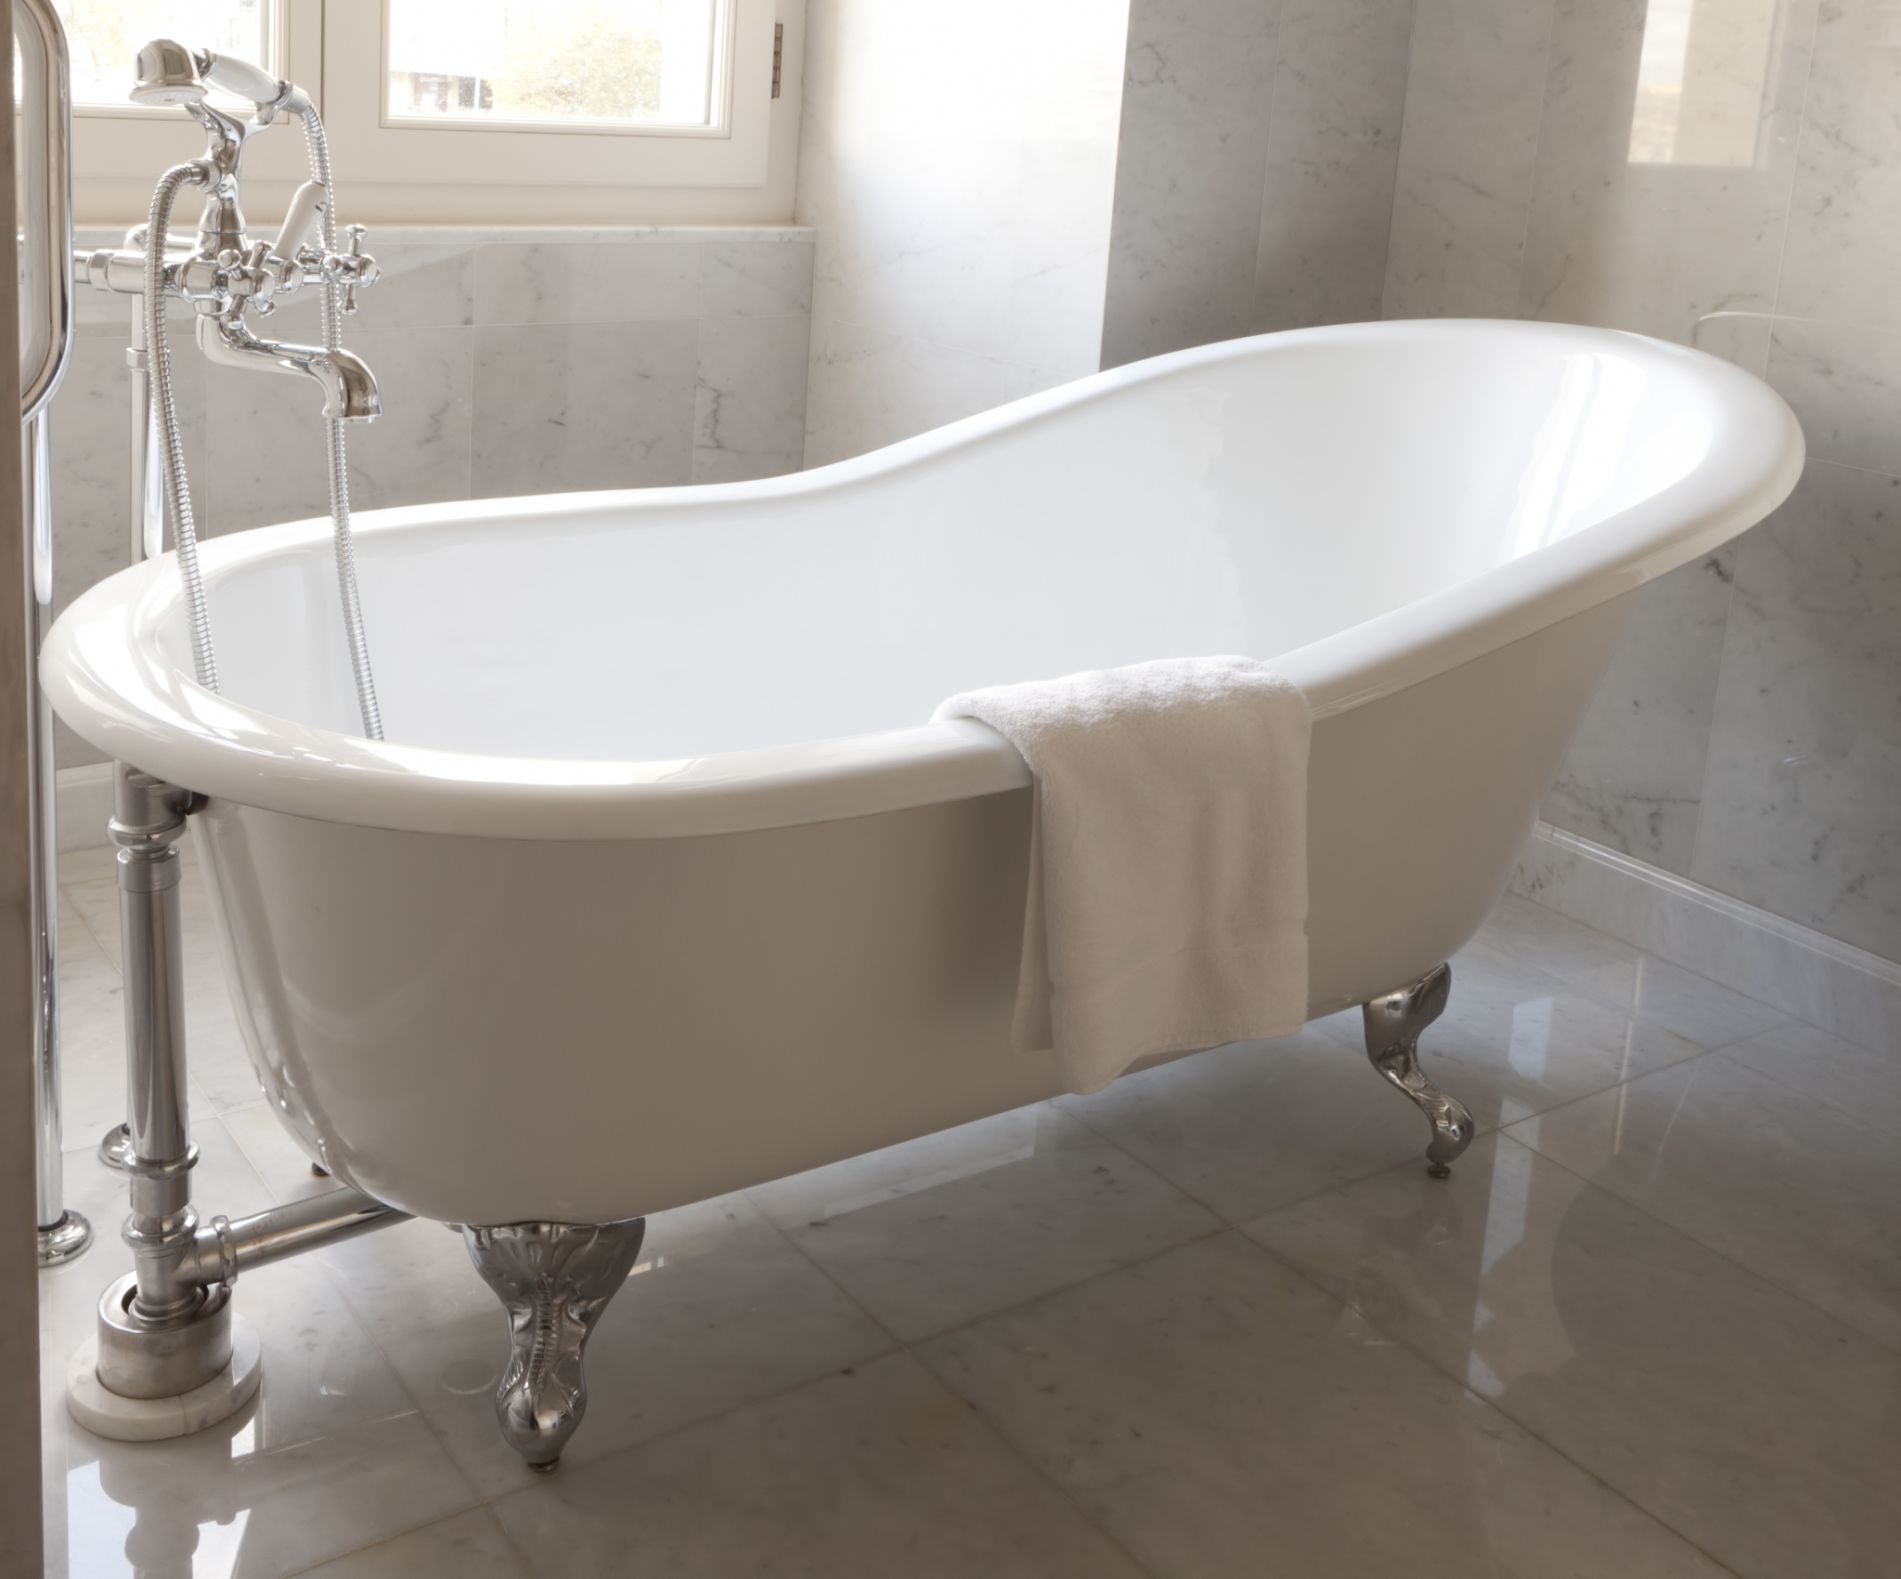 How To Clean a Refinished Bathtub